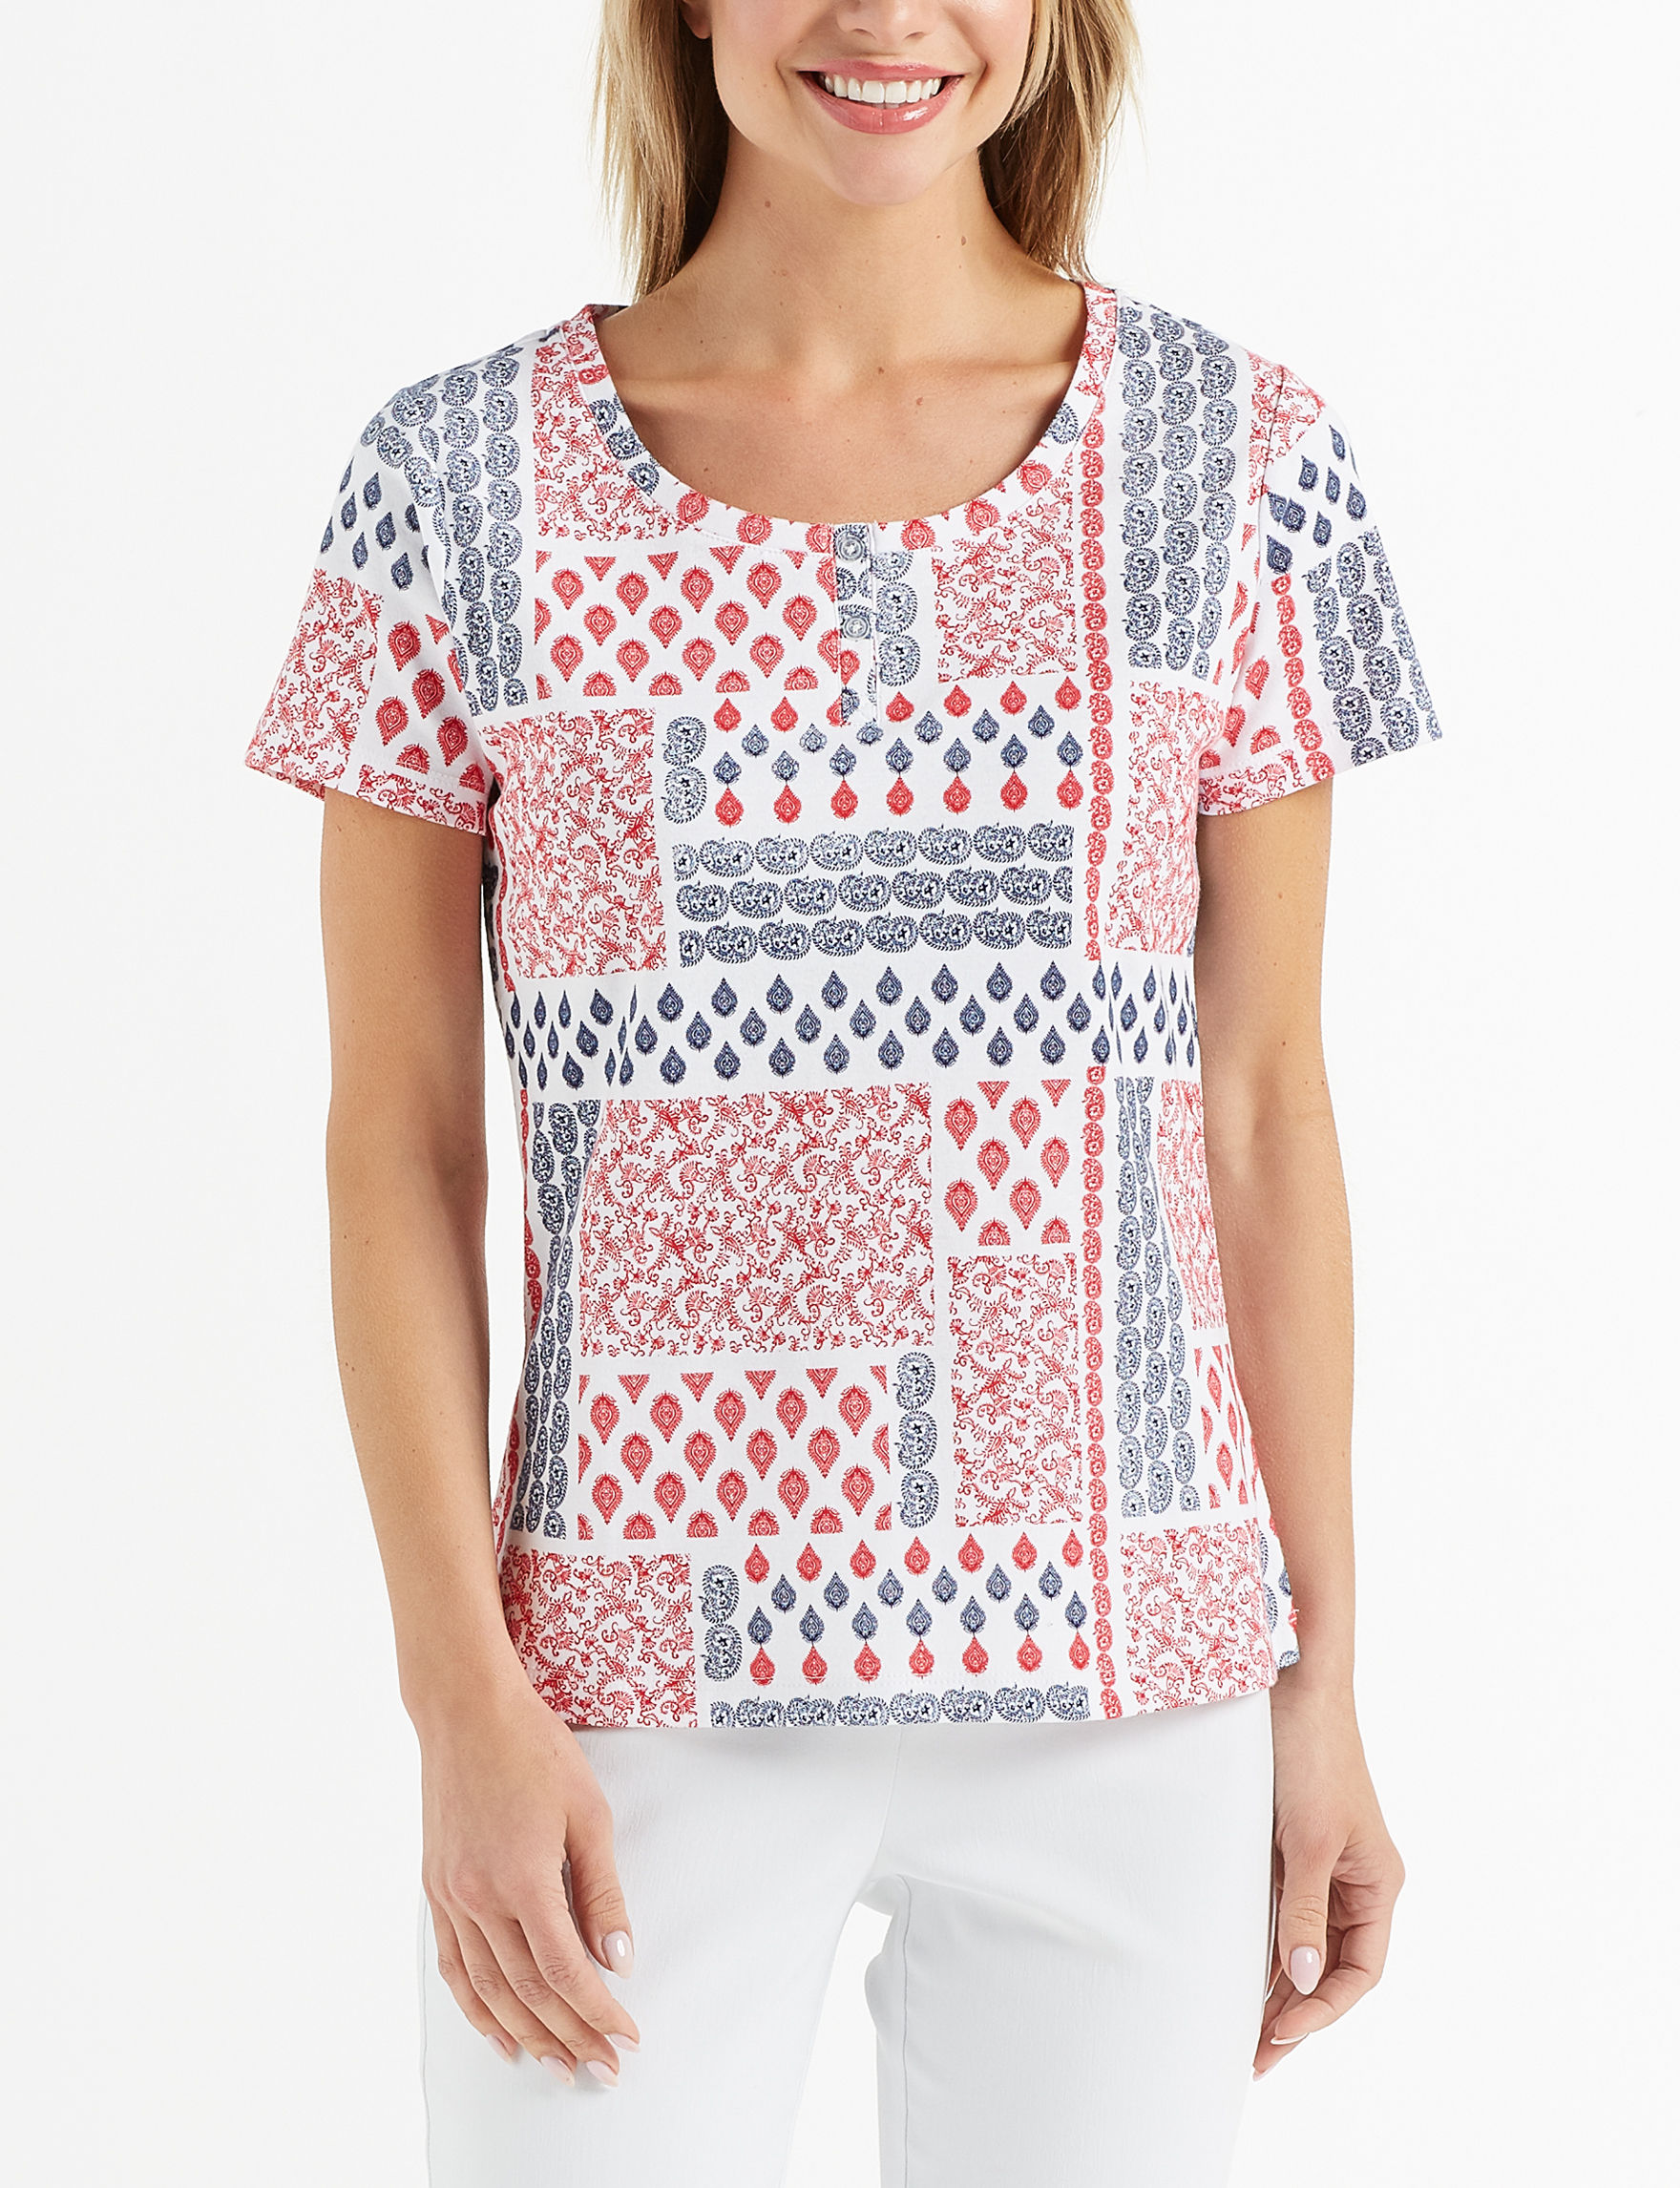 Rebecca Malone White Henleys Shirts & Blouses Tees & Tanks